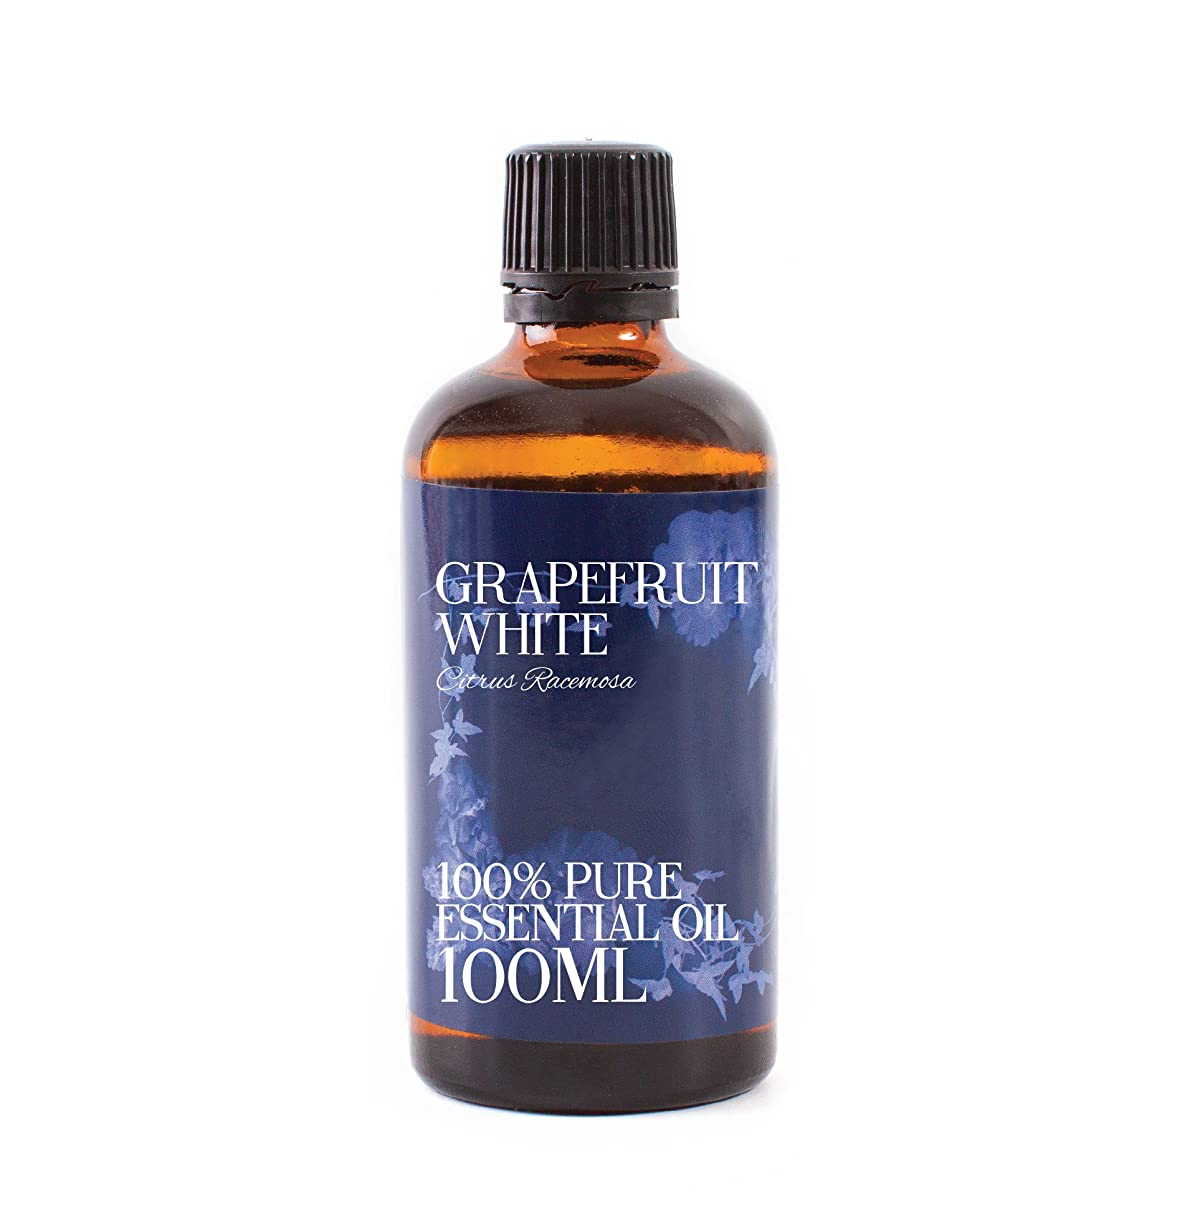 算術王子ブランチMystic Moments | Grapefruit White Essential Oil - 100ml - 100% Pure